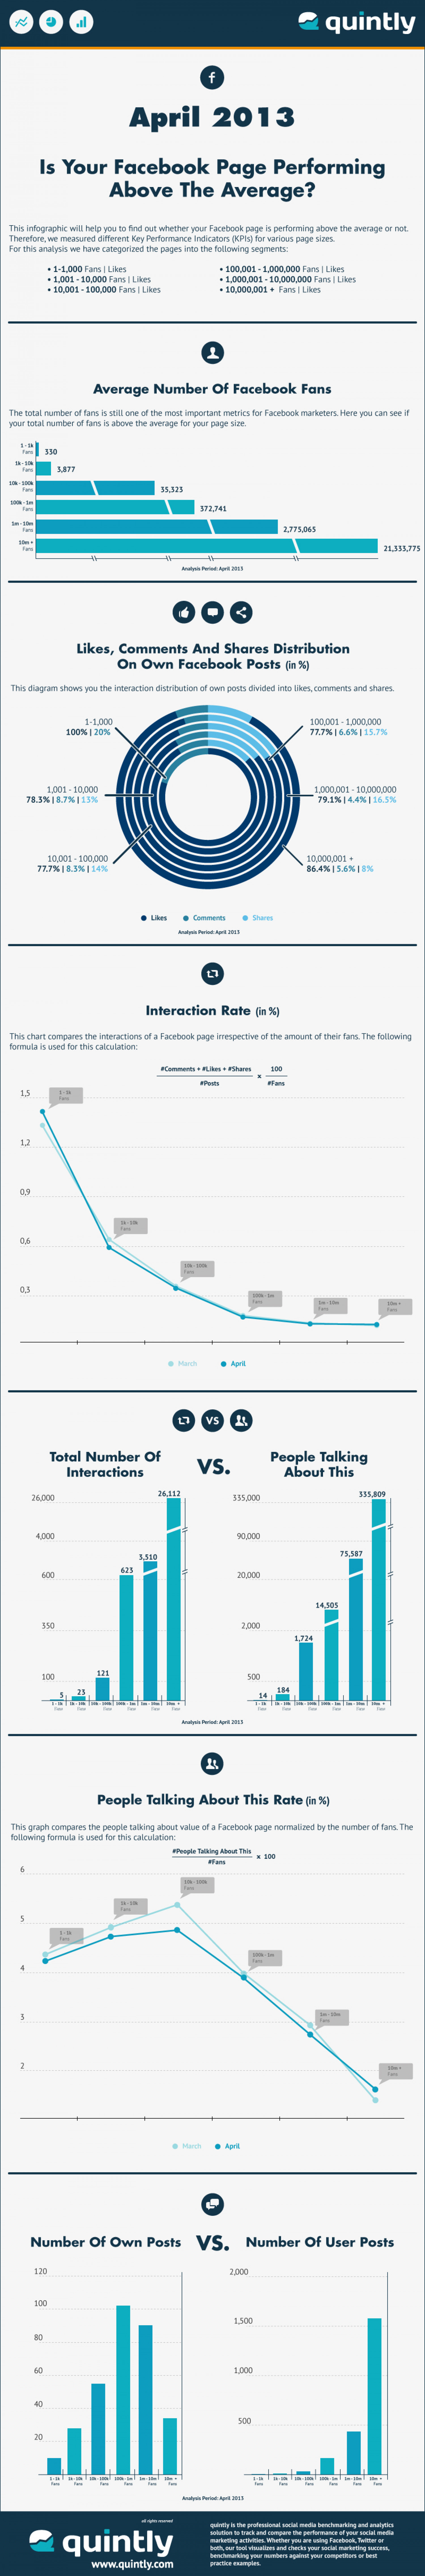 The Average Facebook Page Performance For April 2013 Infographic